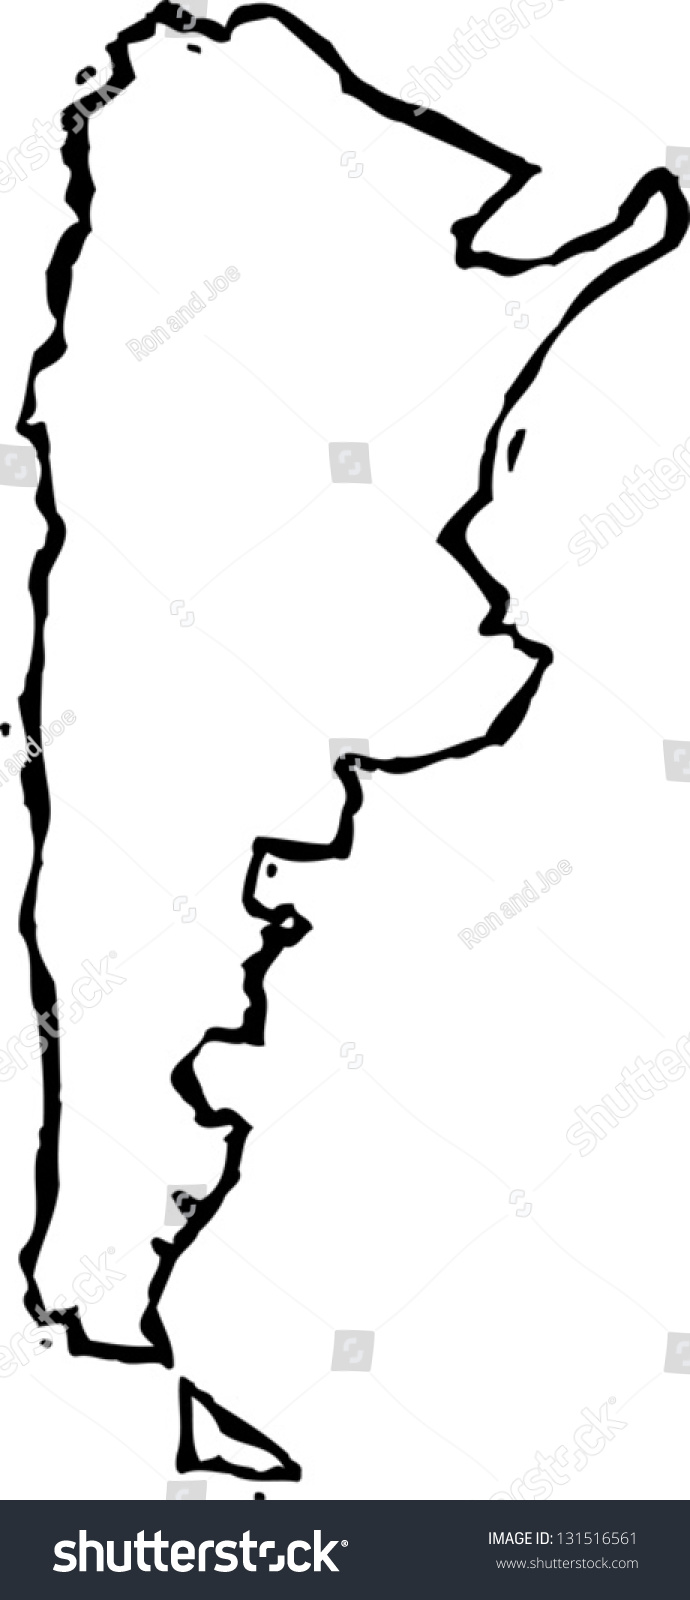 Black White Vector Illustration Map Argentina Stock Vector - Argentina map black and white